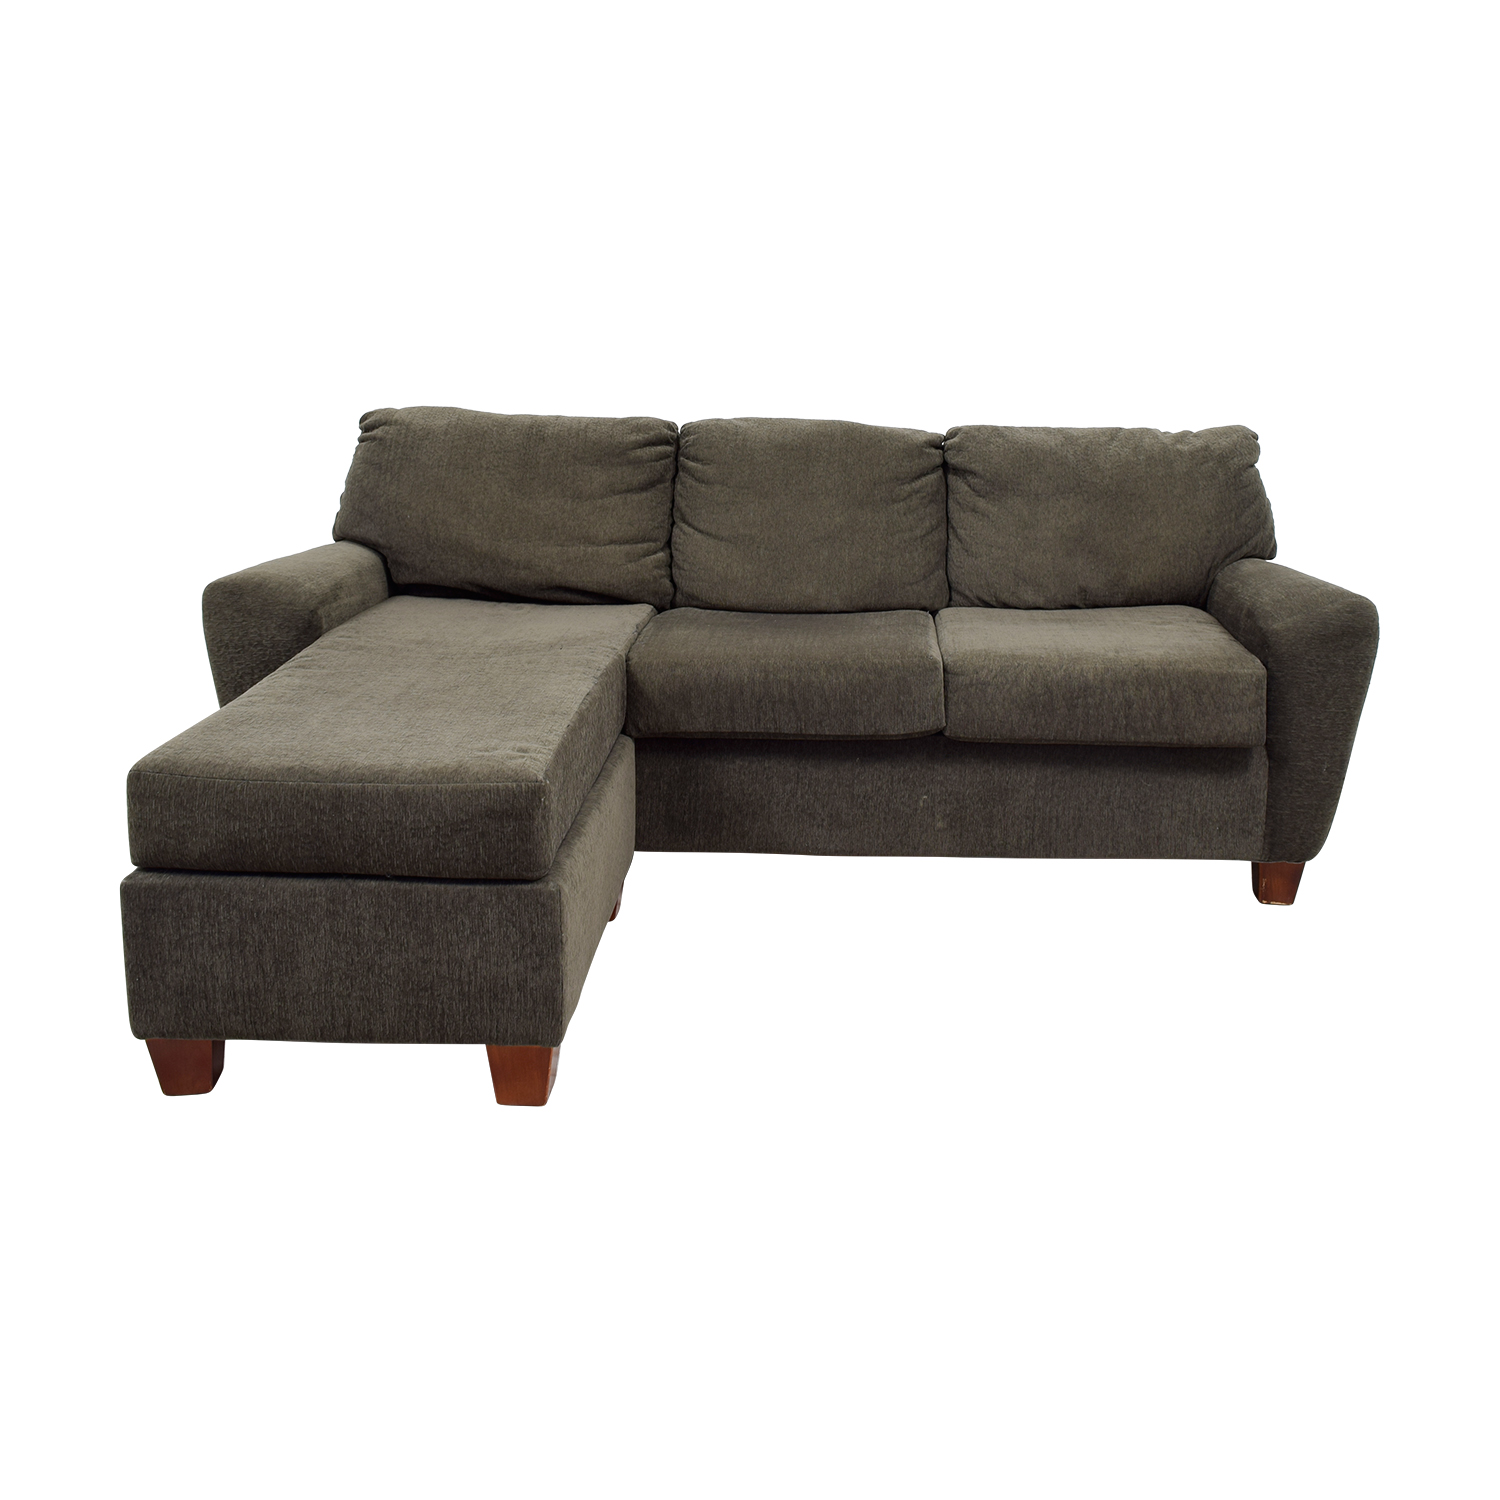 grey large l shaped sofa kidney leather check shape set designs